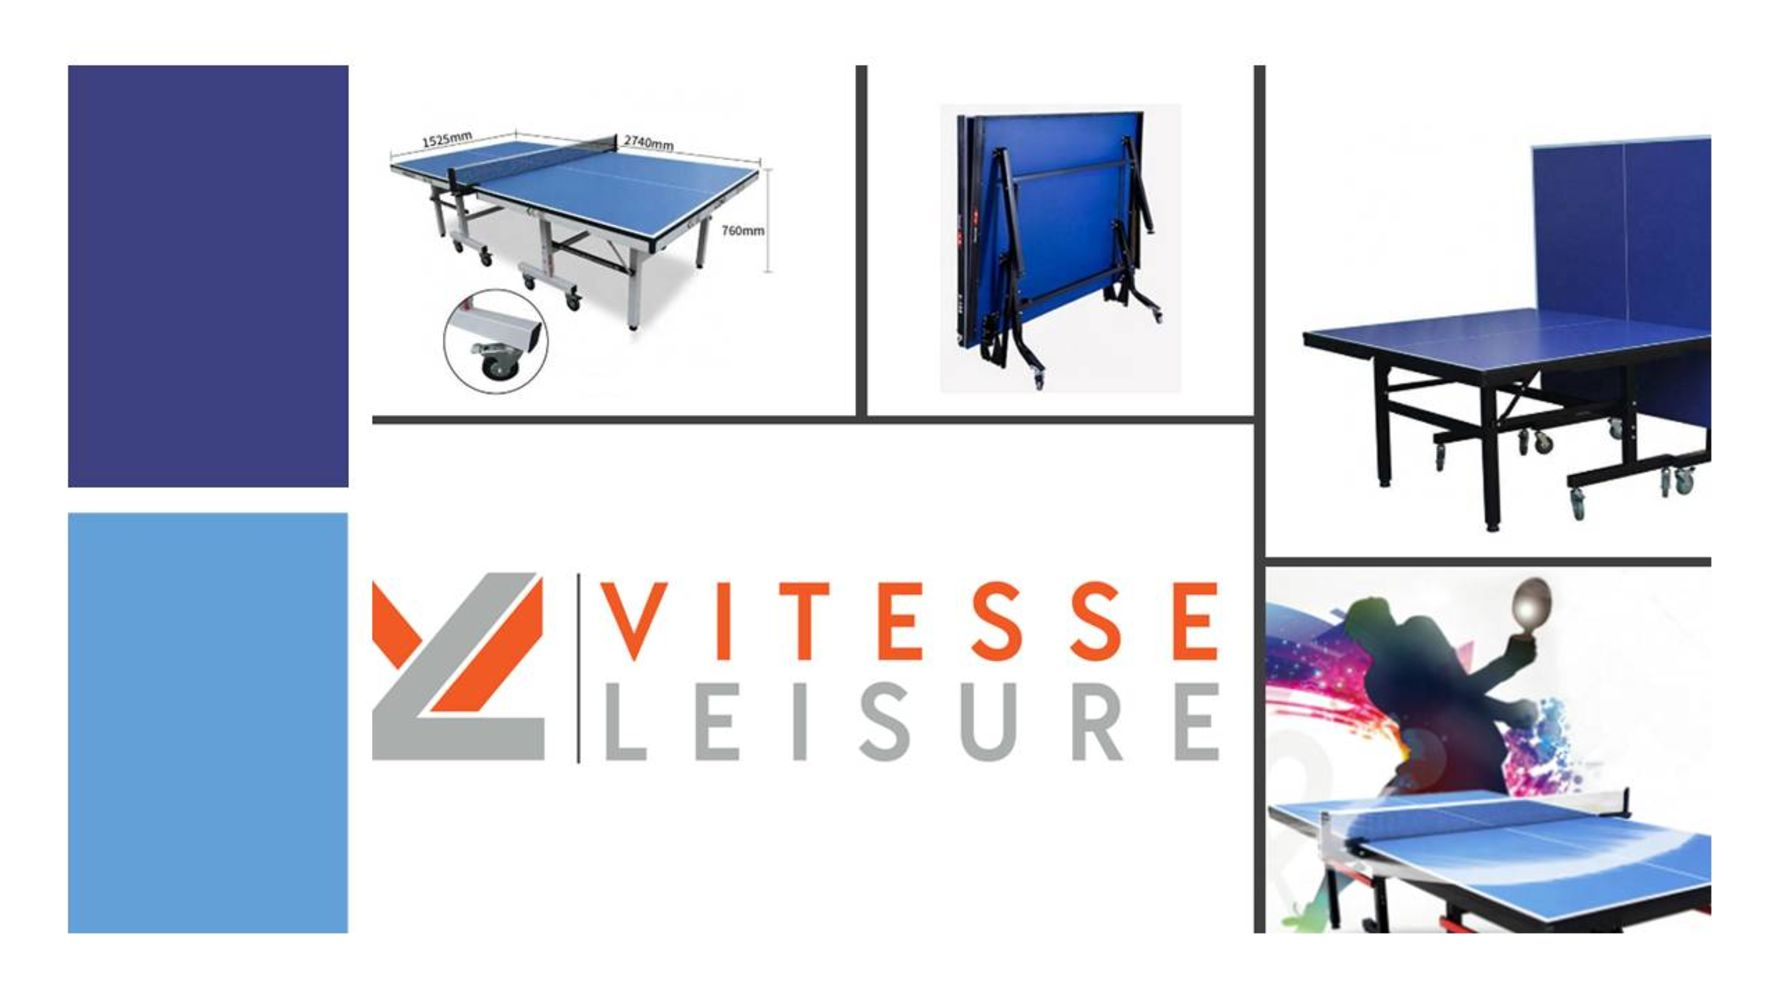 Brand New Table Tennis Tables - Limited Stock - RRP £399 - Available End of May